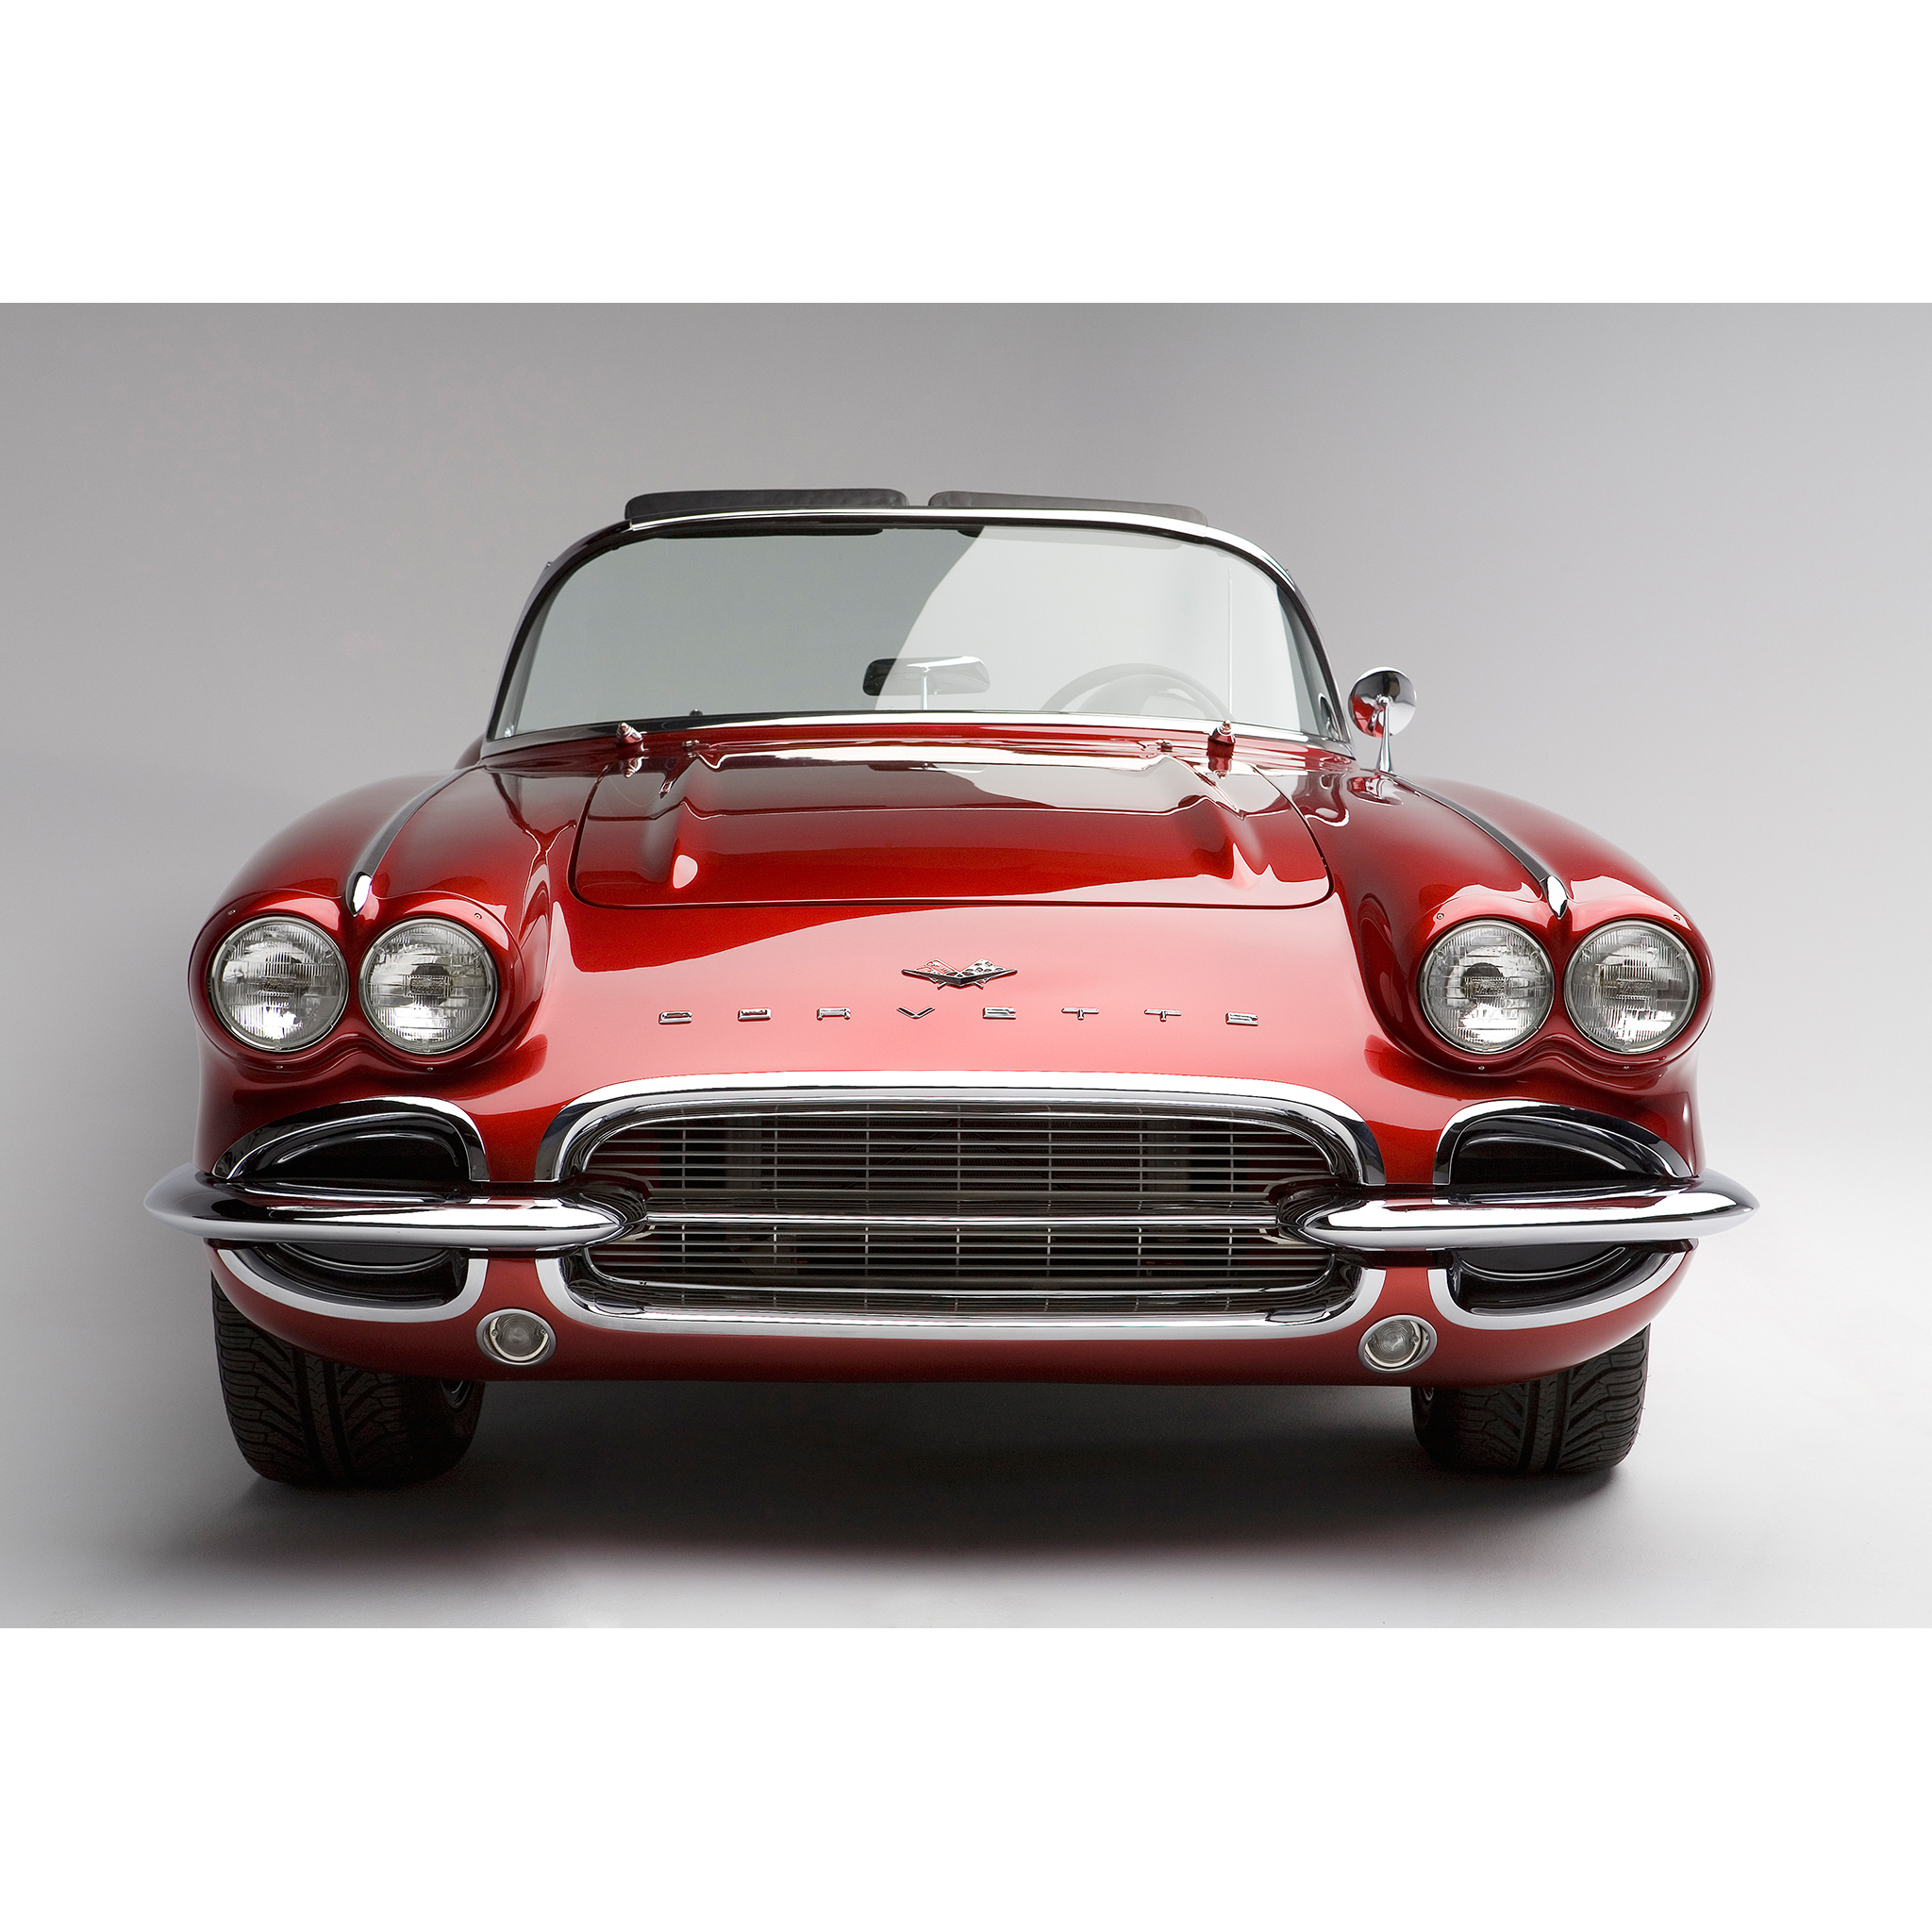 Custom Chevrolet Corvette photographed in studio by Craig Anderson